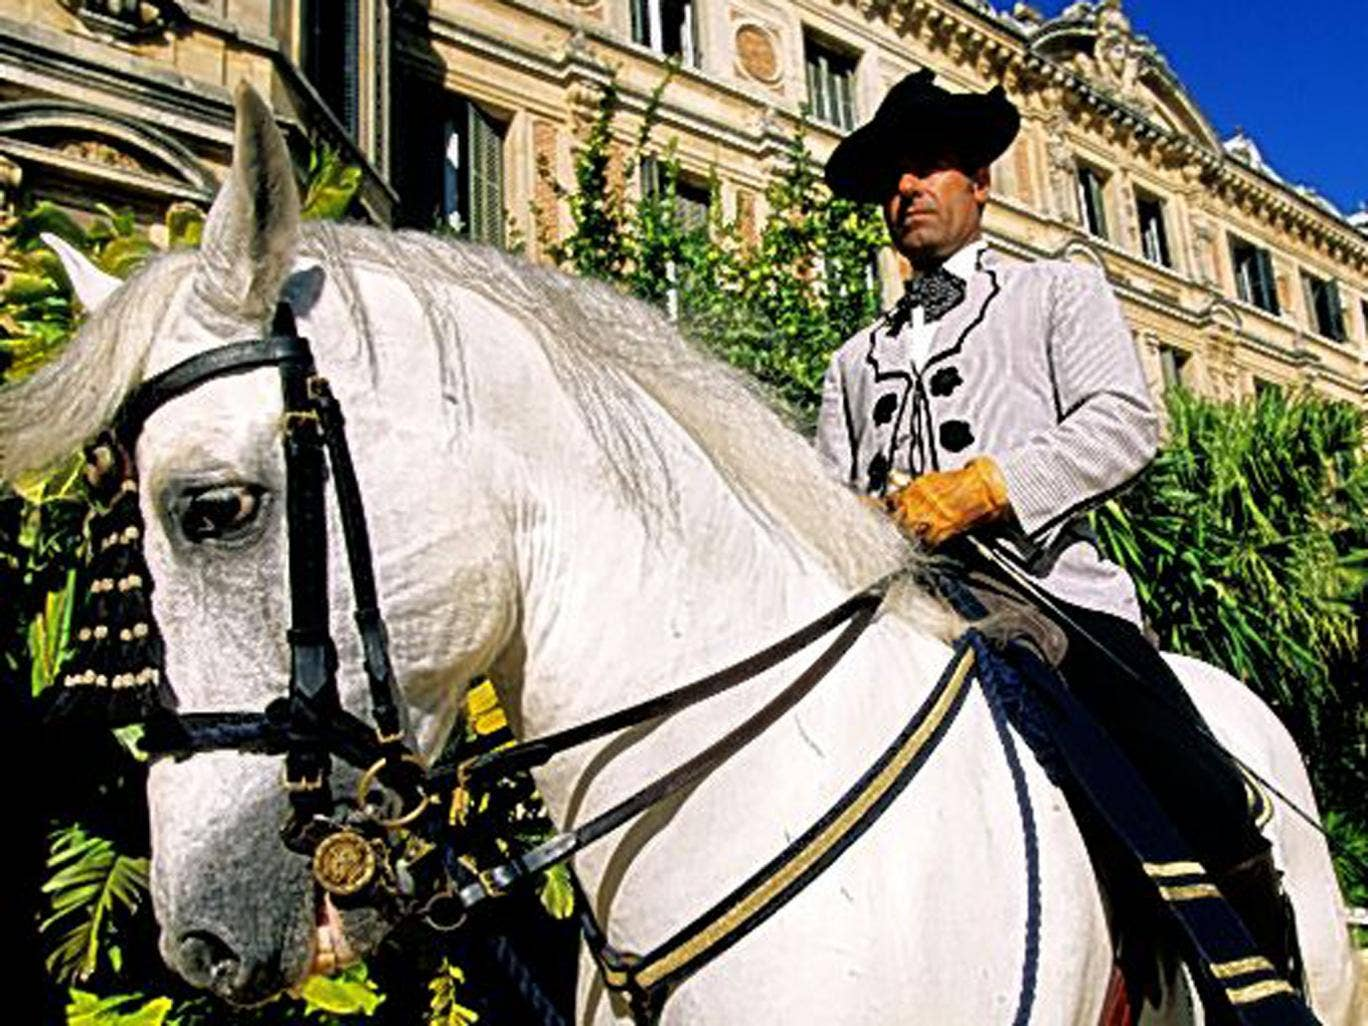 The Royal Andalusian School of Equestrian Art: bi-weekly shows by the dancing horses